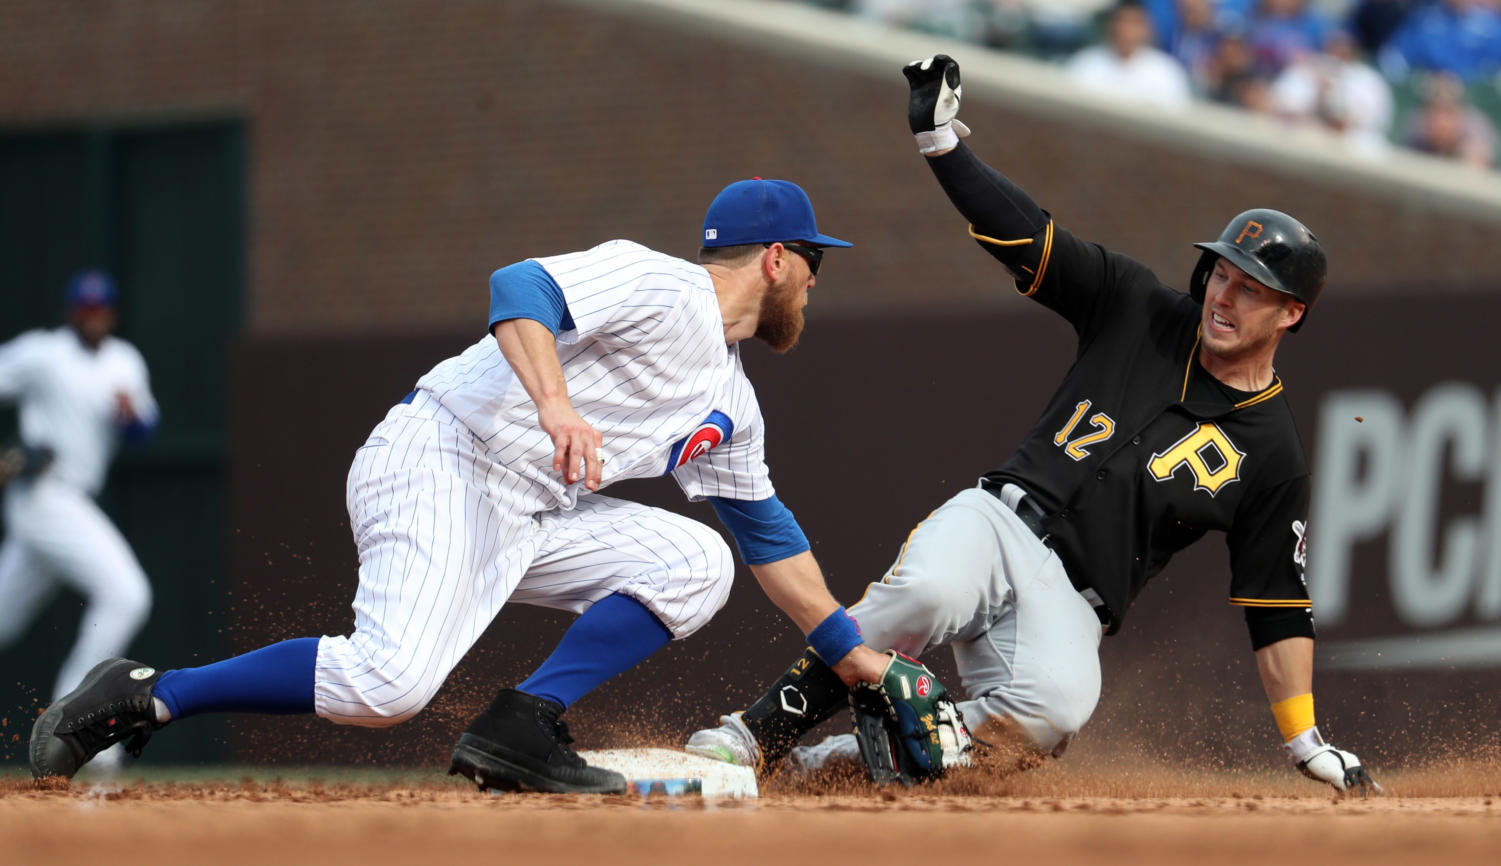 The Pittsburgh Pirates' Corey Dickerson (12) reaches second base with a double ahead of the tag from Chicago Cubs second baseman Ben Zobrist in the ninth inning April 12 at Wrigley Field in Chicago. The Pirates won, 6-1. (Brian Cassella/Chicago Tribune/TNS)